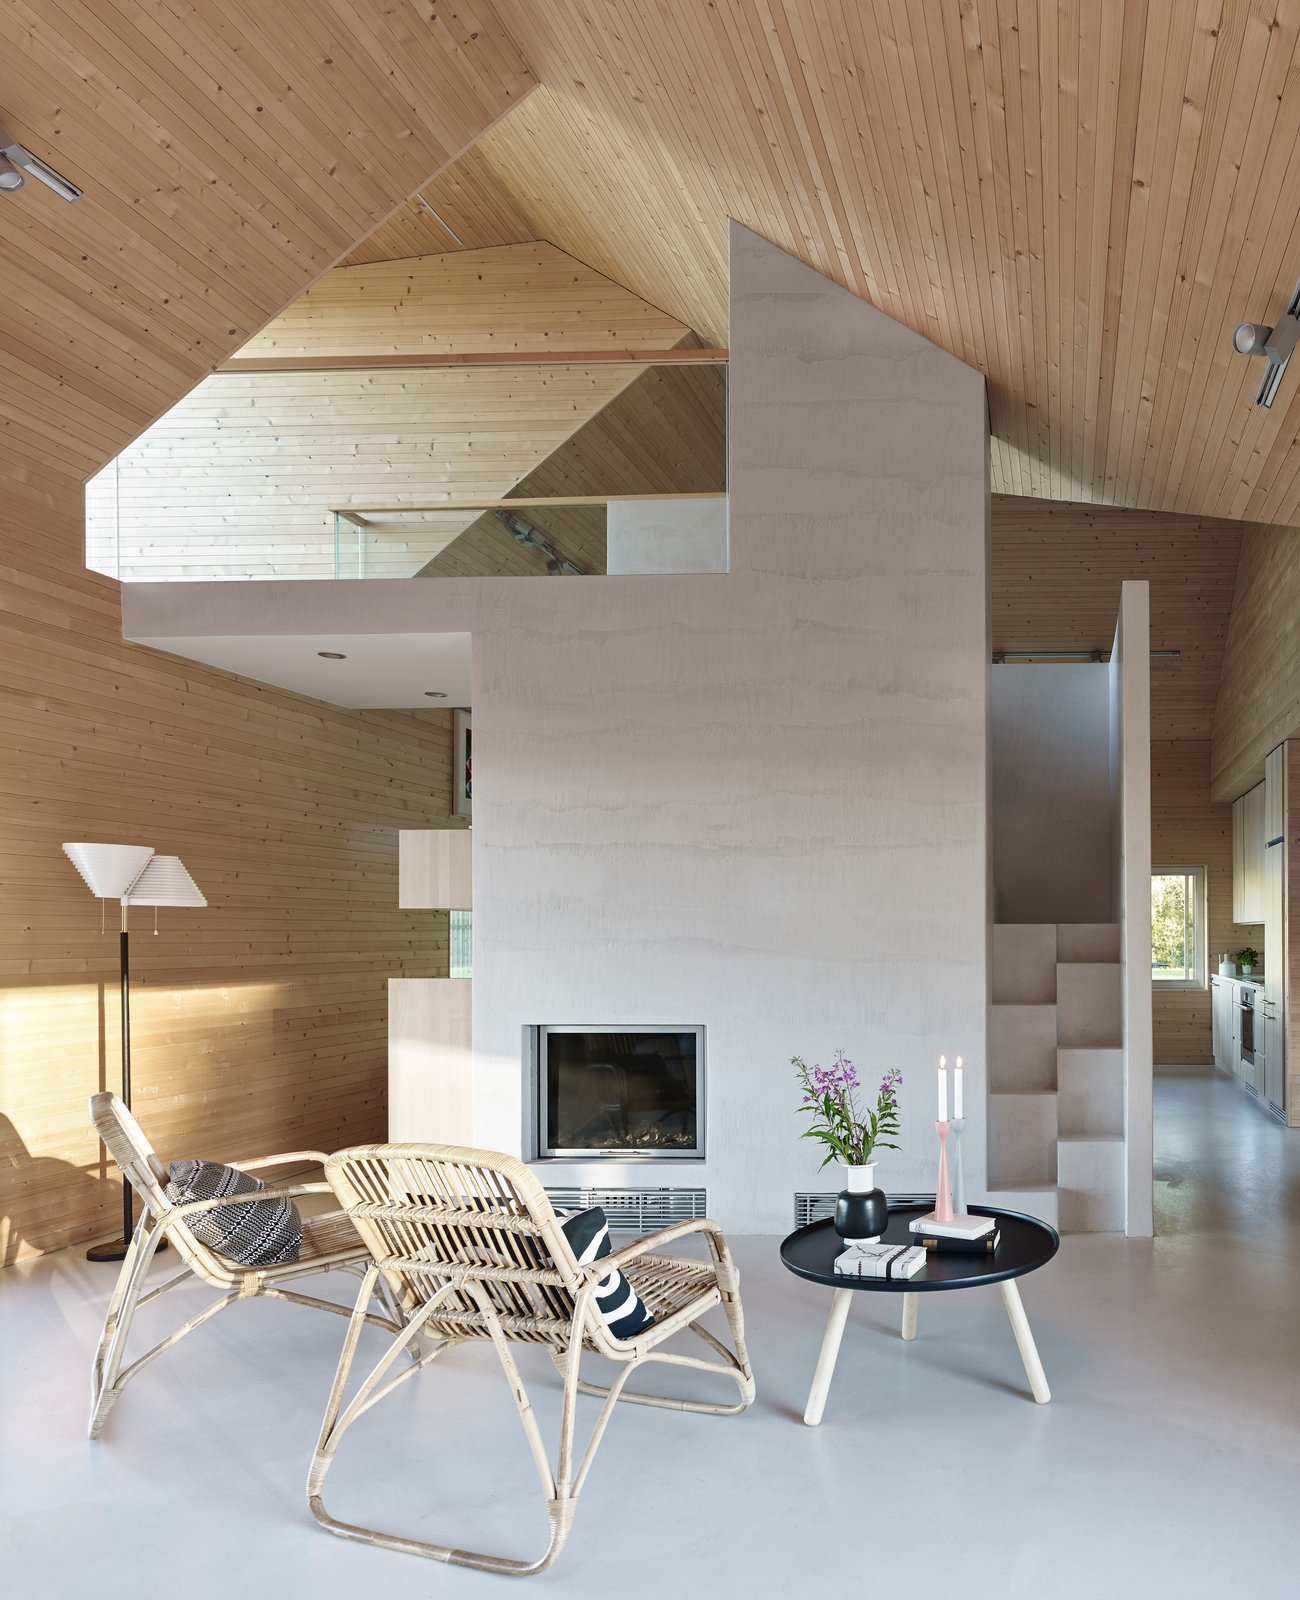 Living Room, Chair, Coffee Tables, Ceiling Lighting, Floor Lighting, Concrete Floor, and Wood Burning Fireplace The living room includes a table from Normann Copenhagen, chairs by Annansilmät-Aitta, and Alvar Aalto's A810 lamp for Artek, all on a poured concrete floor.  Photo 5 of 8 in This Battery-Powered House Never Runs Out of Juice